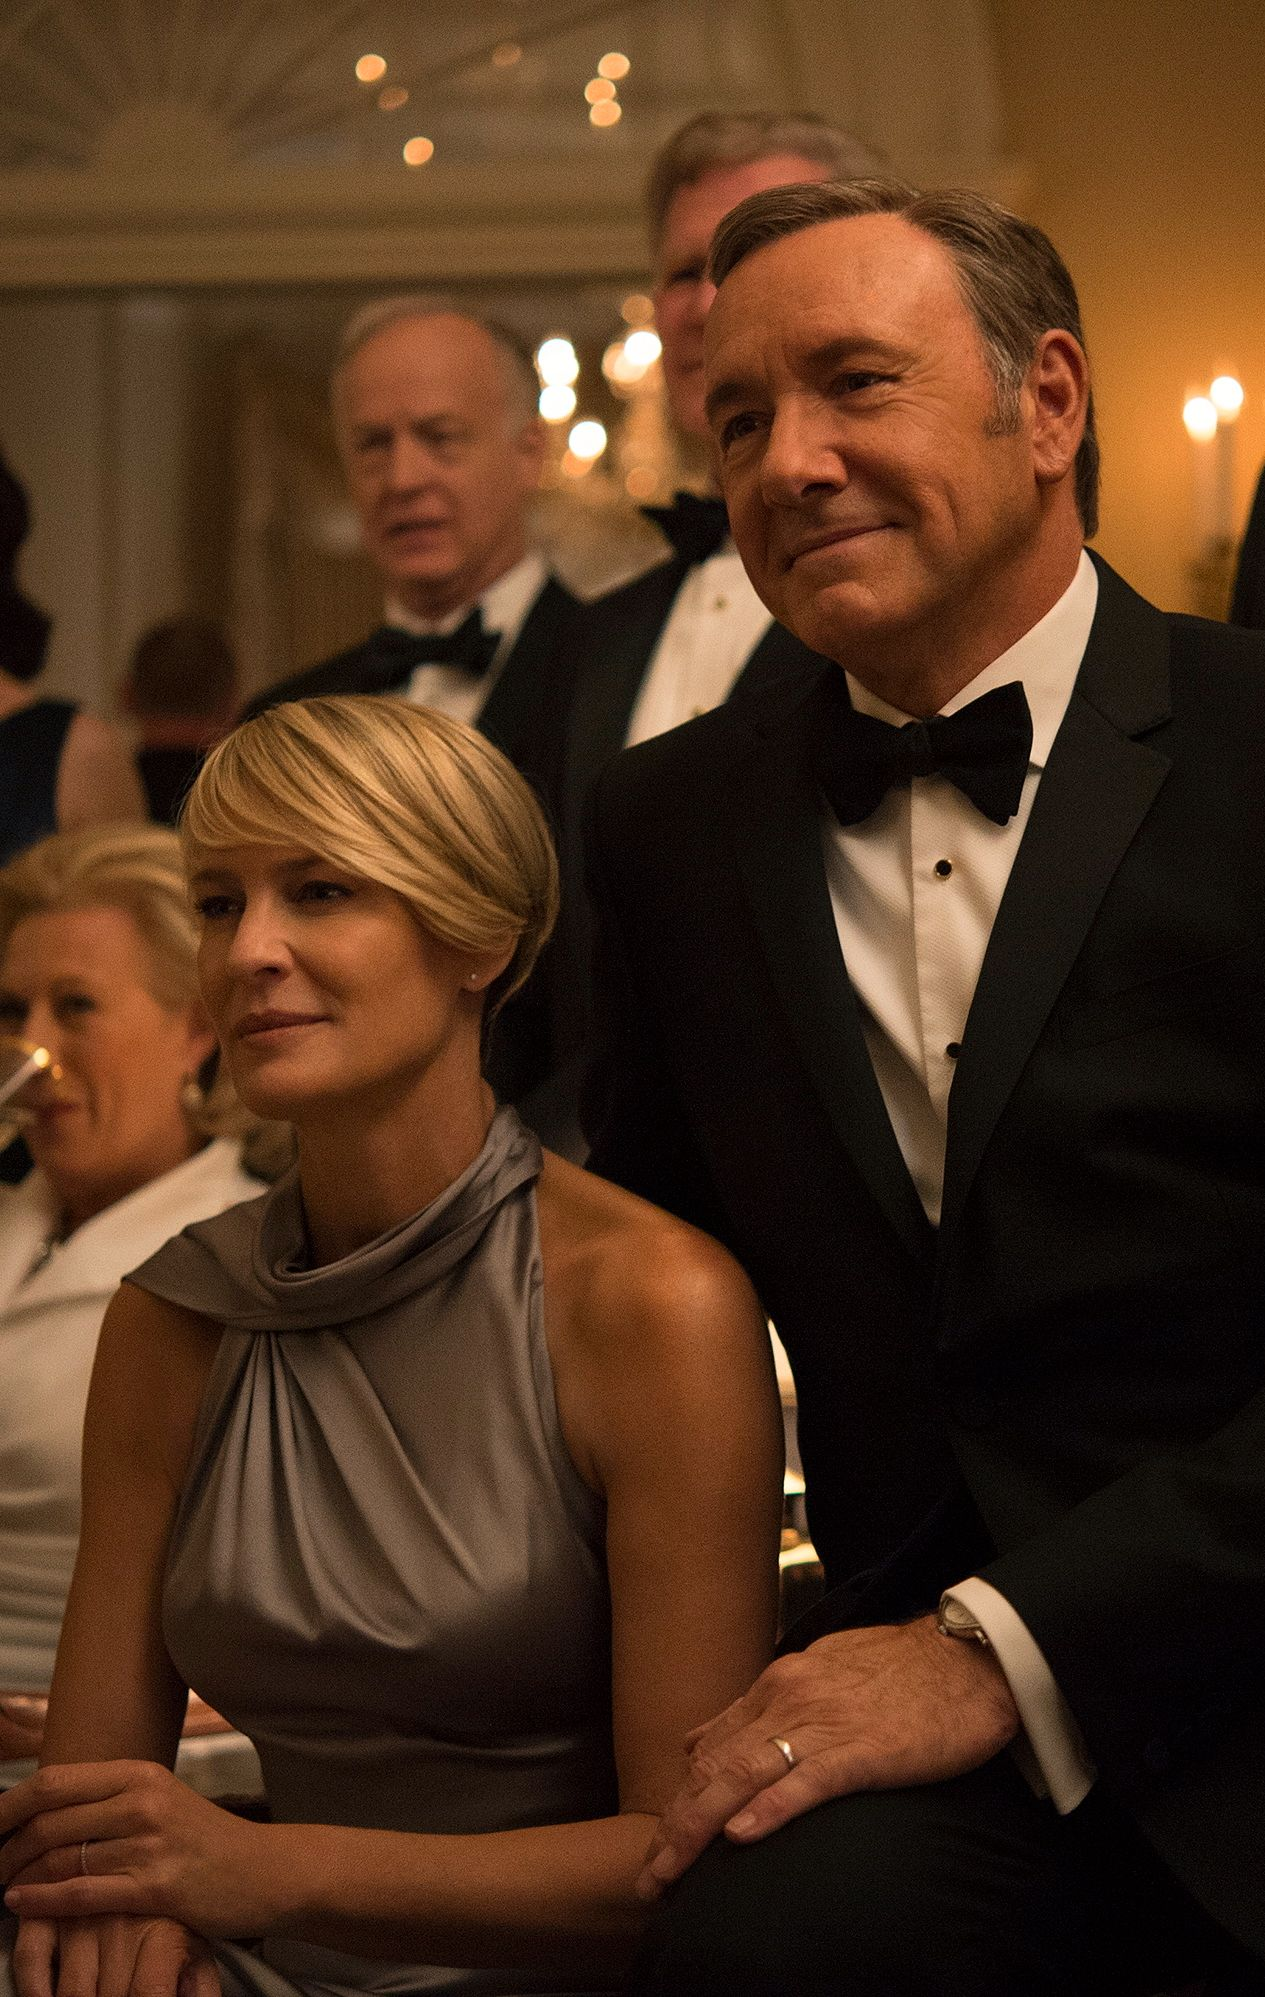 HOVEDROLLER: Kevin Spacey og Robin Wright i rollene som Frank og Claire Underwood i House of Cards.